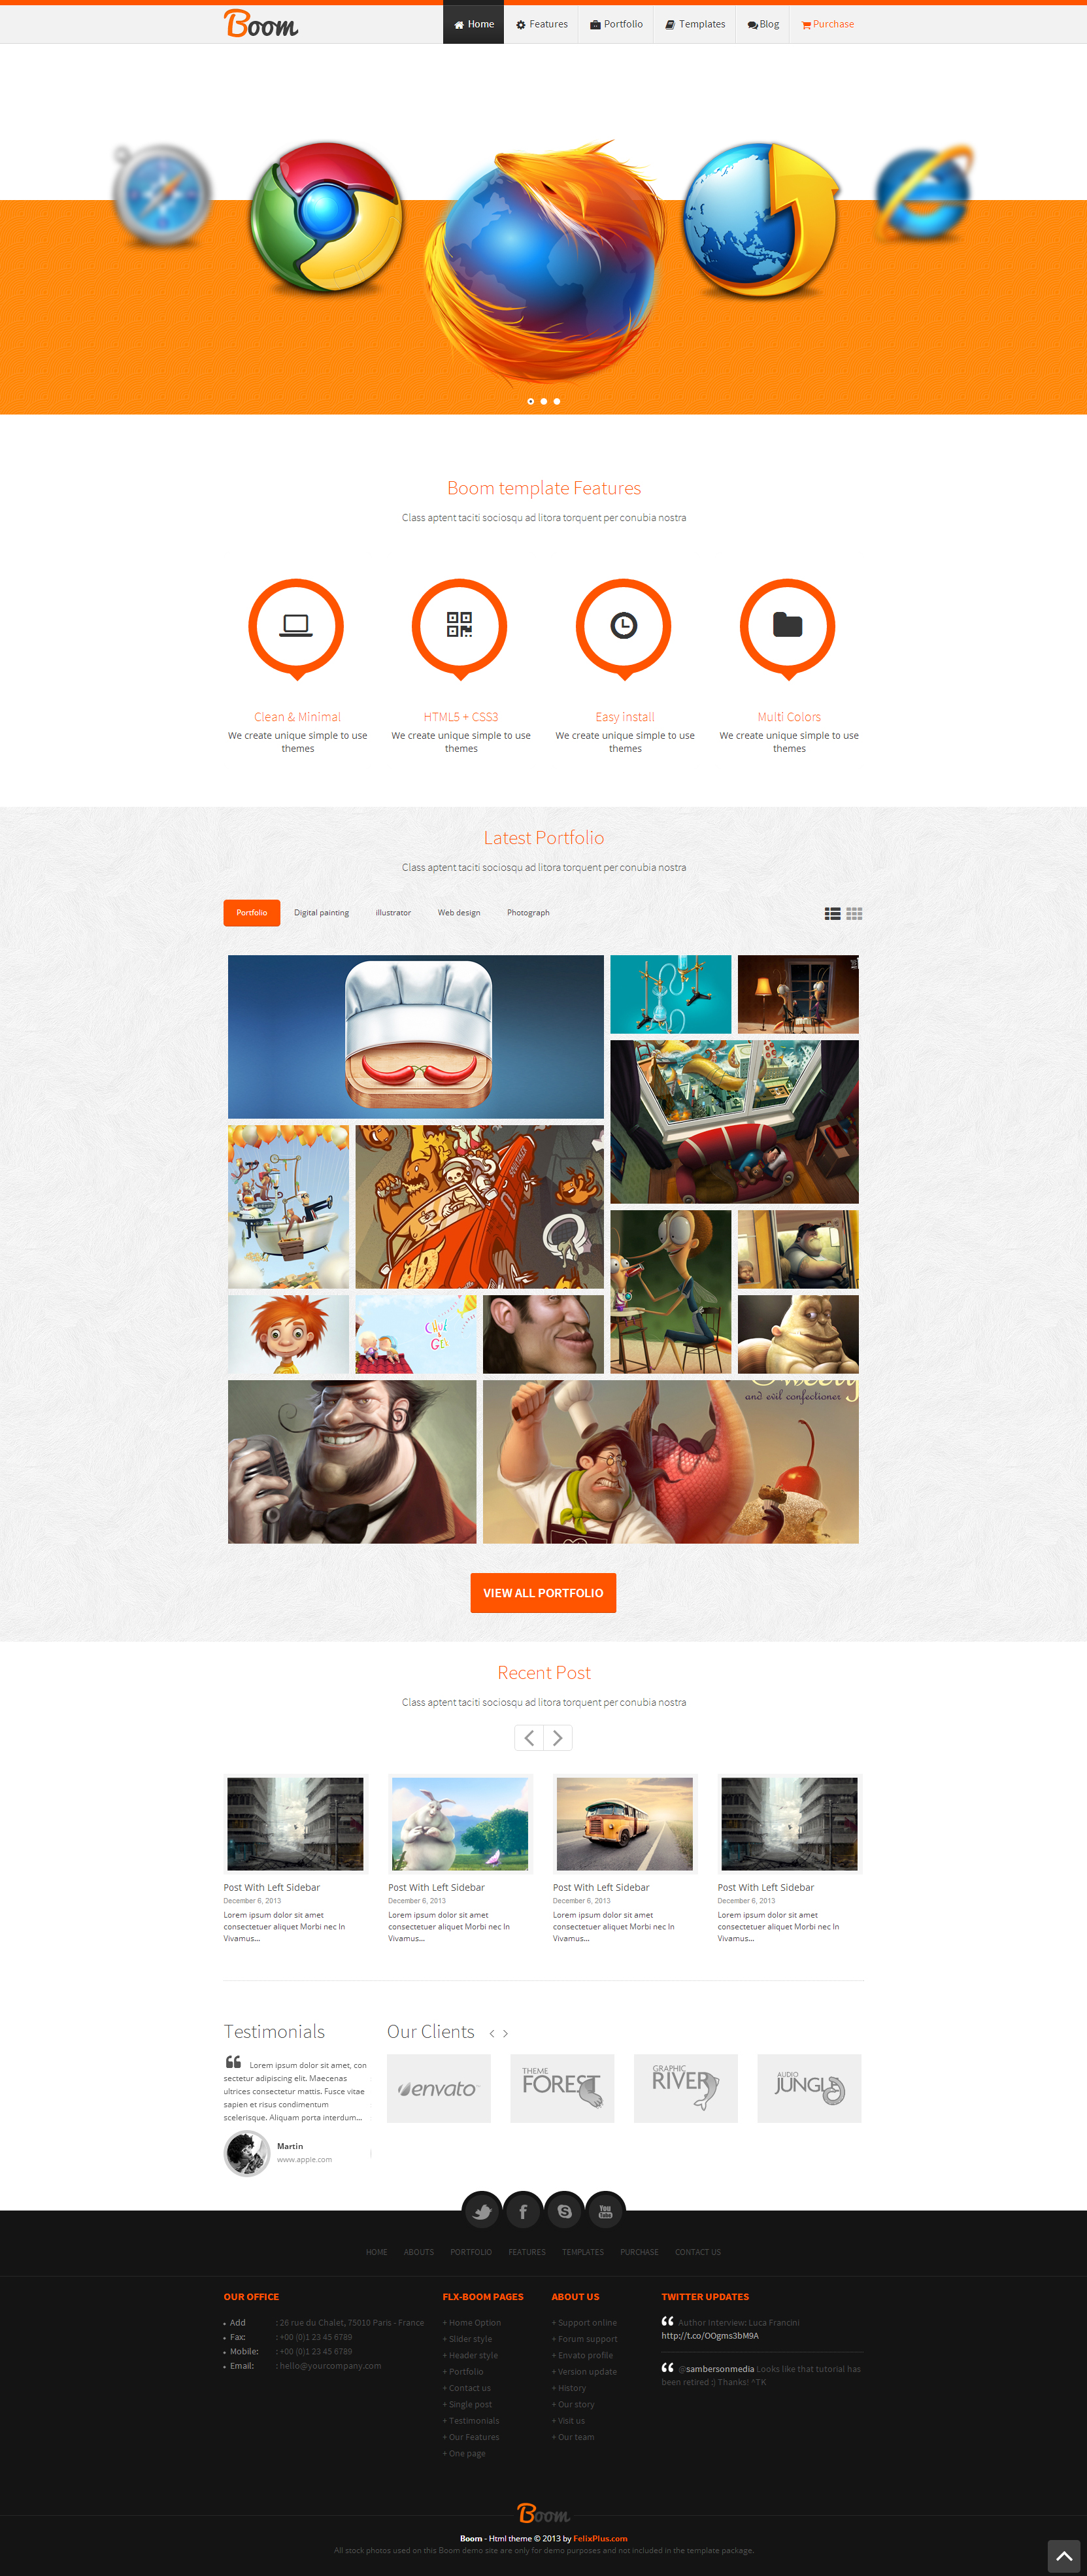 Website Templates Boom Responsive Html5 Template Zizaza Item